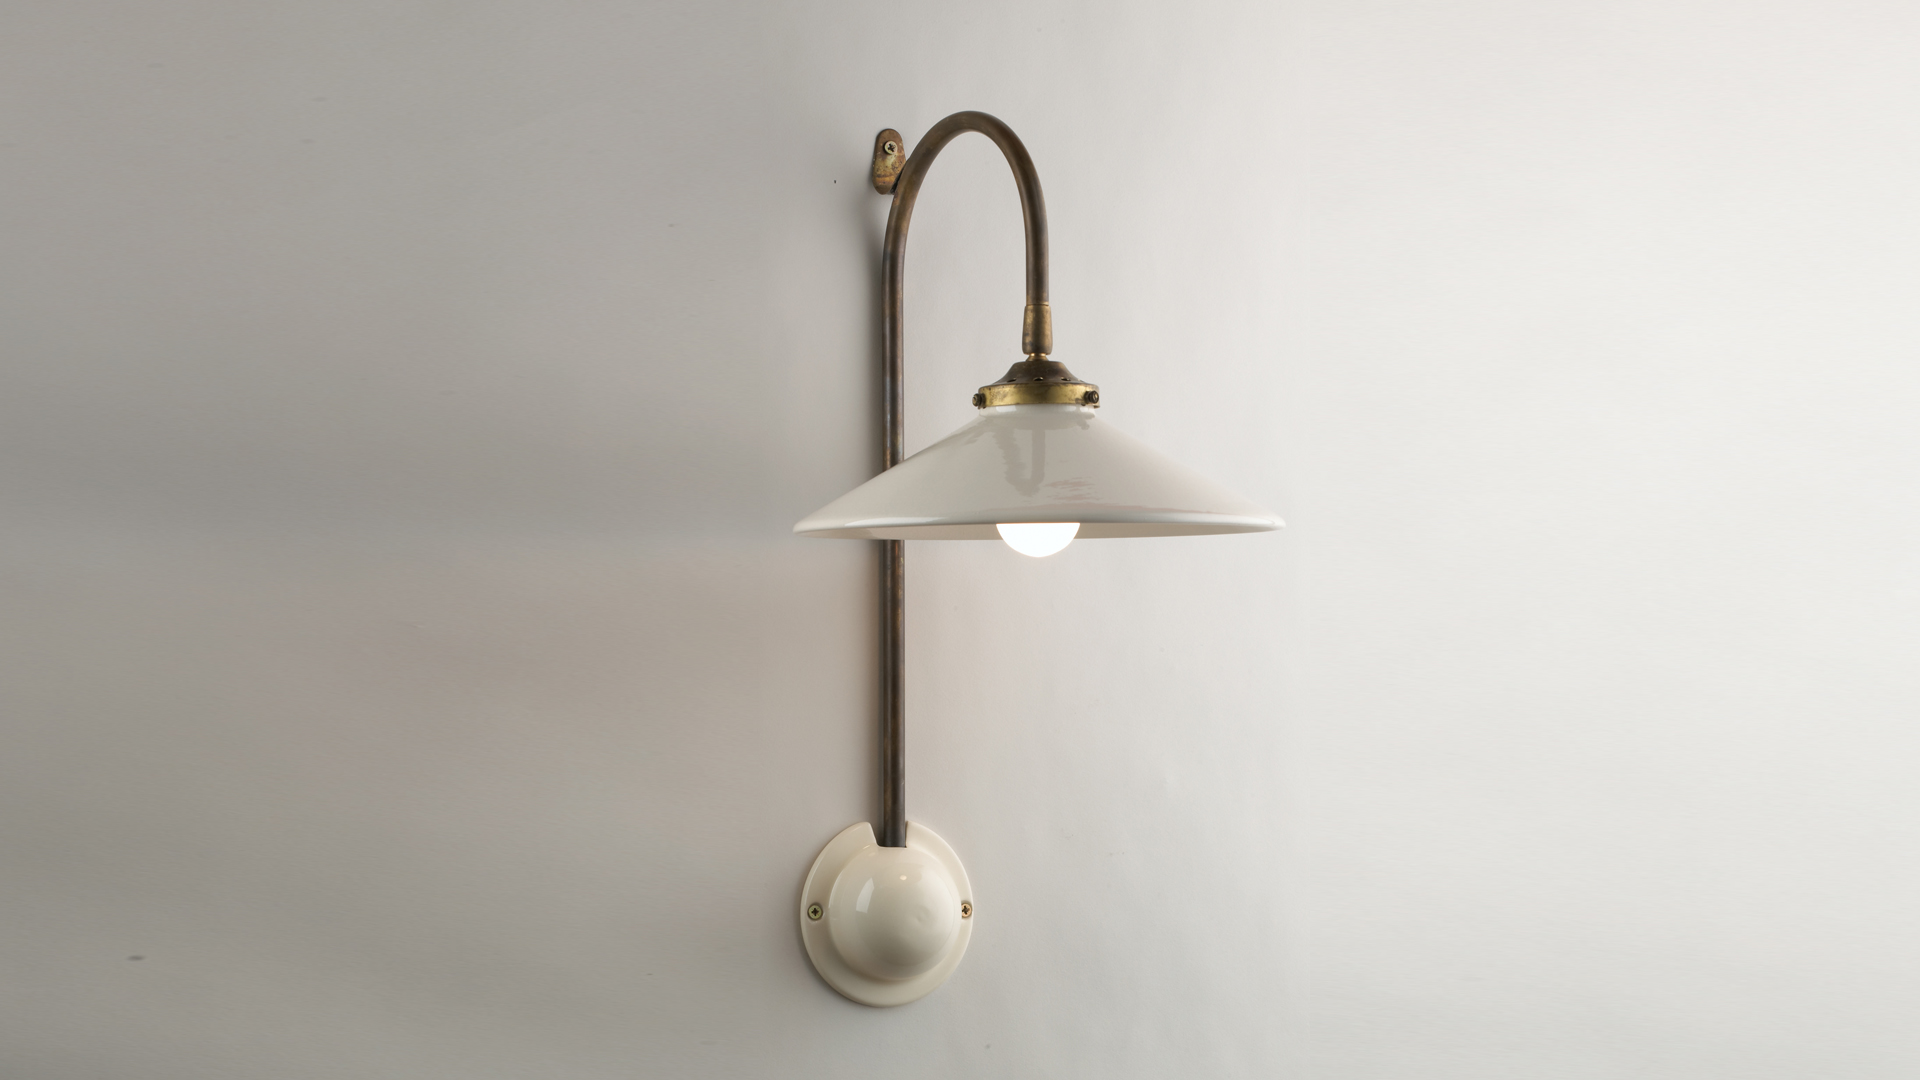 Wall Lamps Gumtree : Ceramic Wall Lamps - reversadermcream.com